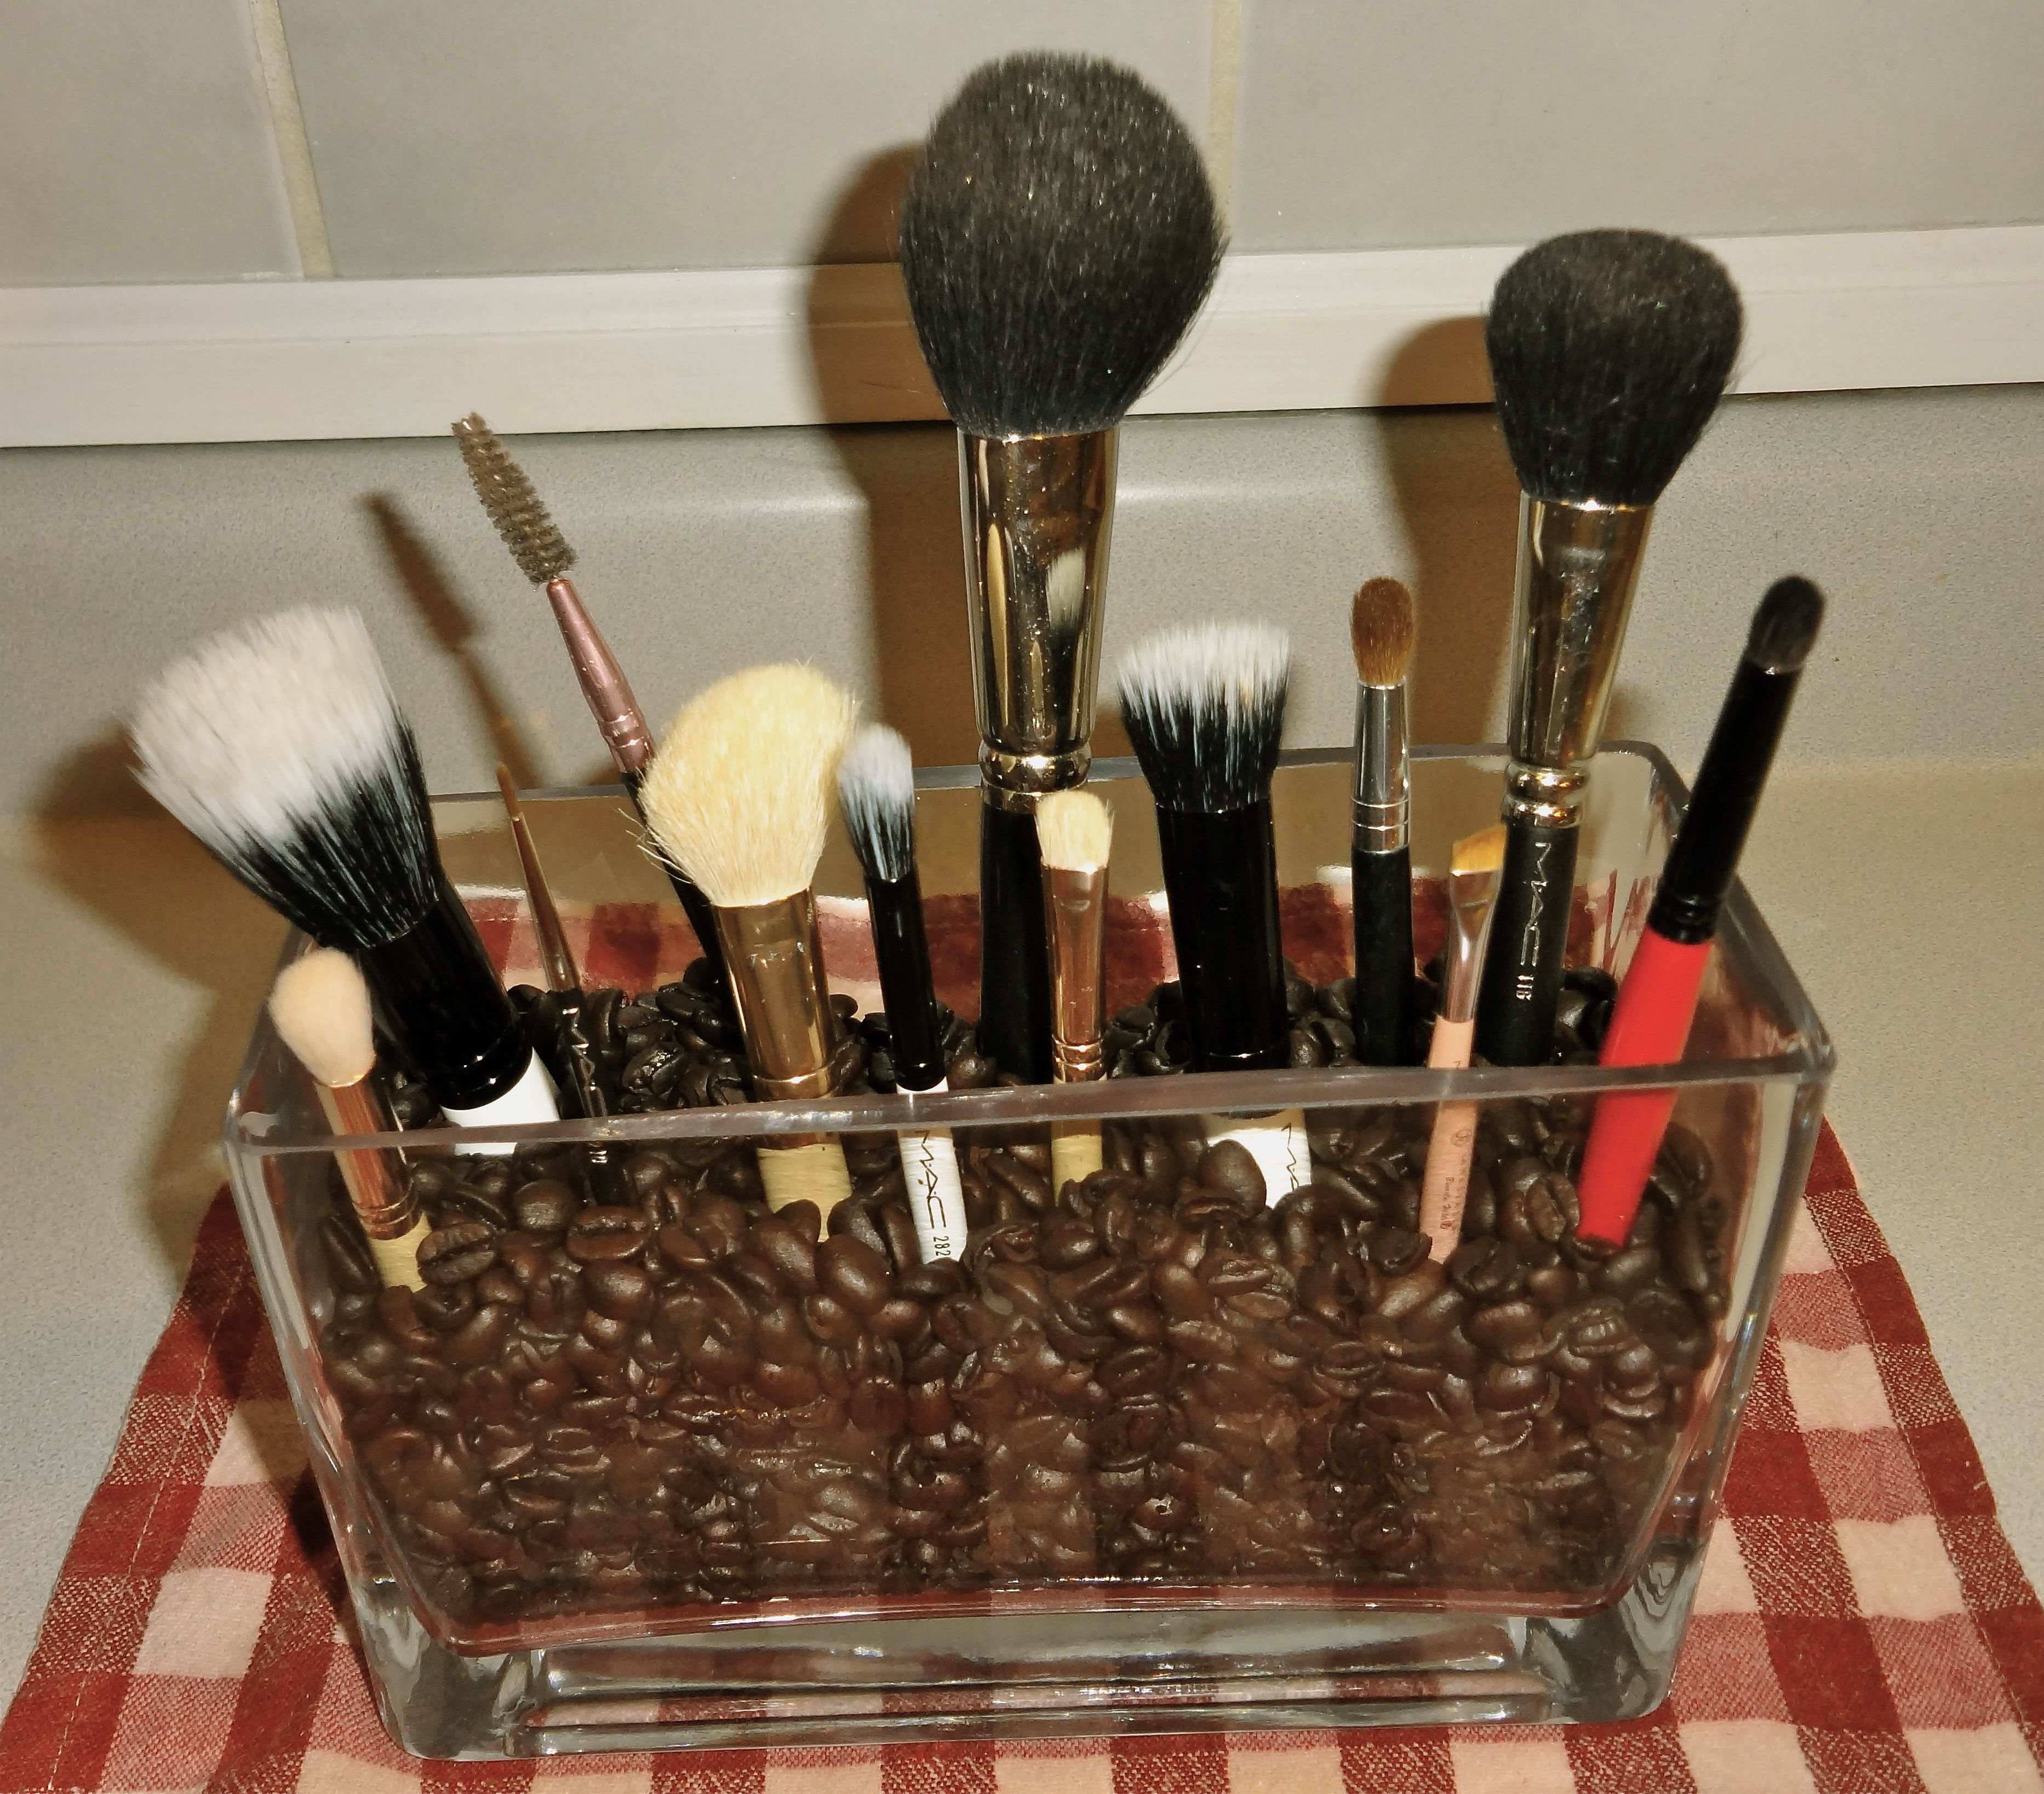 Check Out Some Makeup Storage Ideas, Make Organization Tips, Some Makeup  Organizers And Some Makeup Organizer Ideas. If Youu0027re Looking For Some  Beauty ...